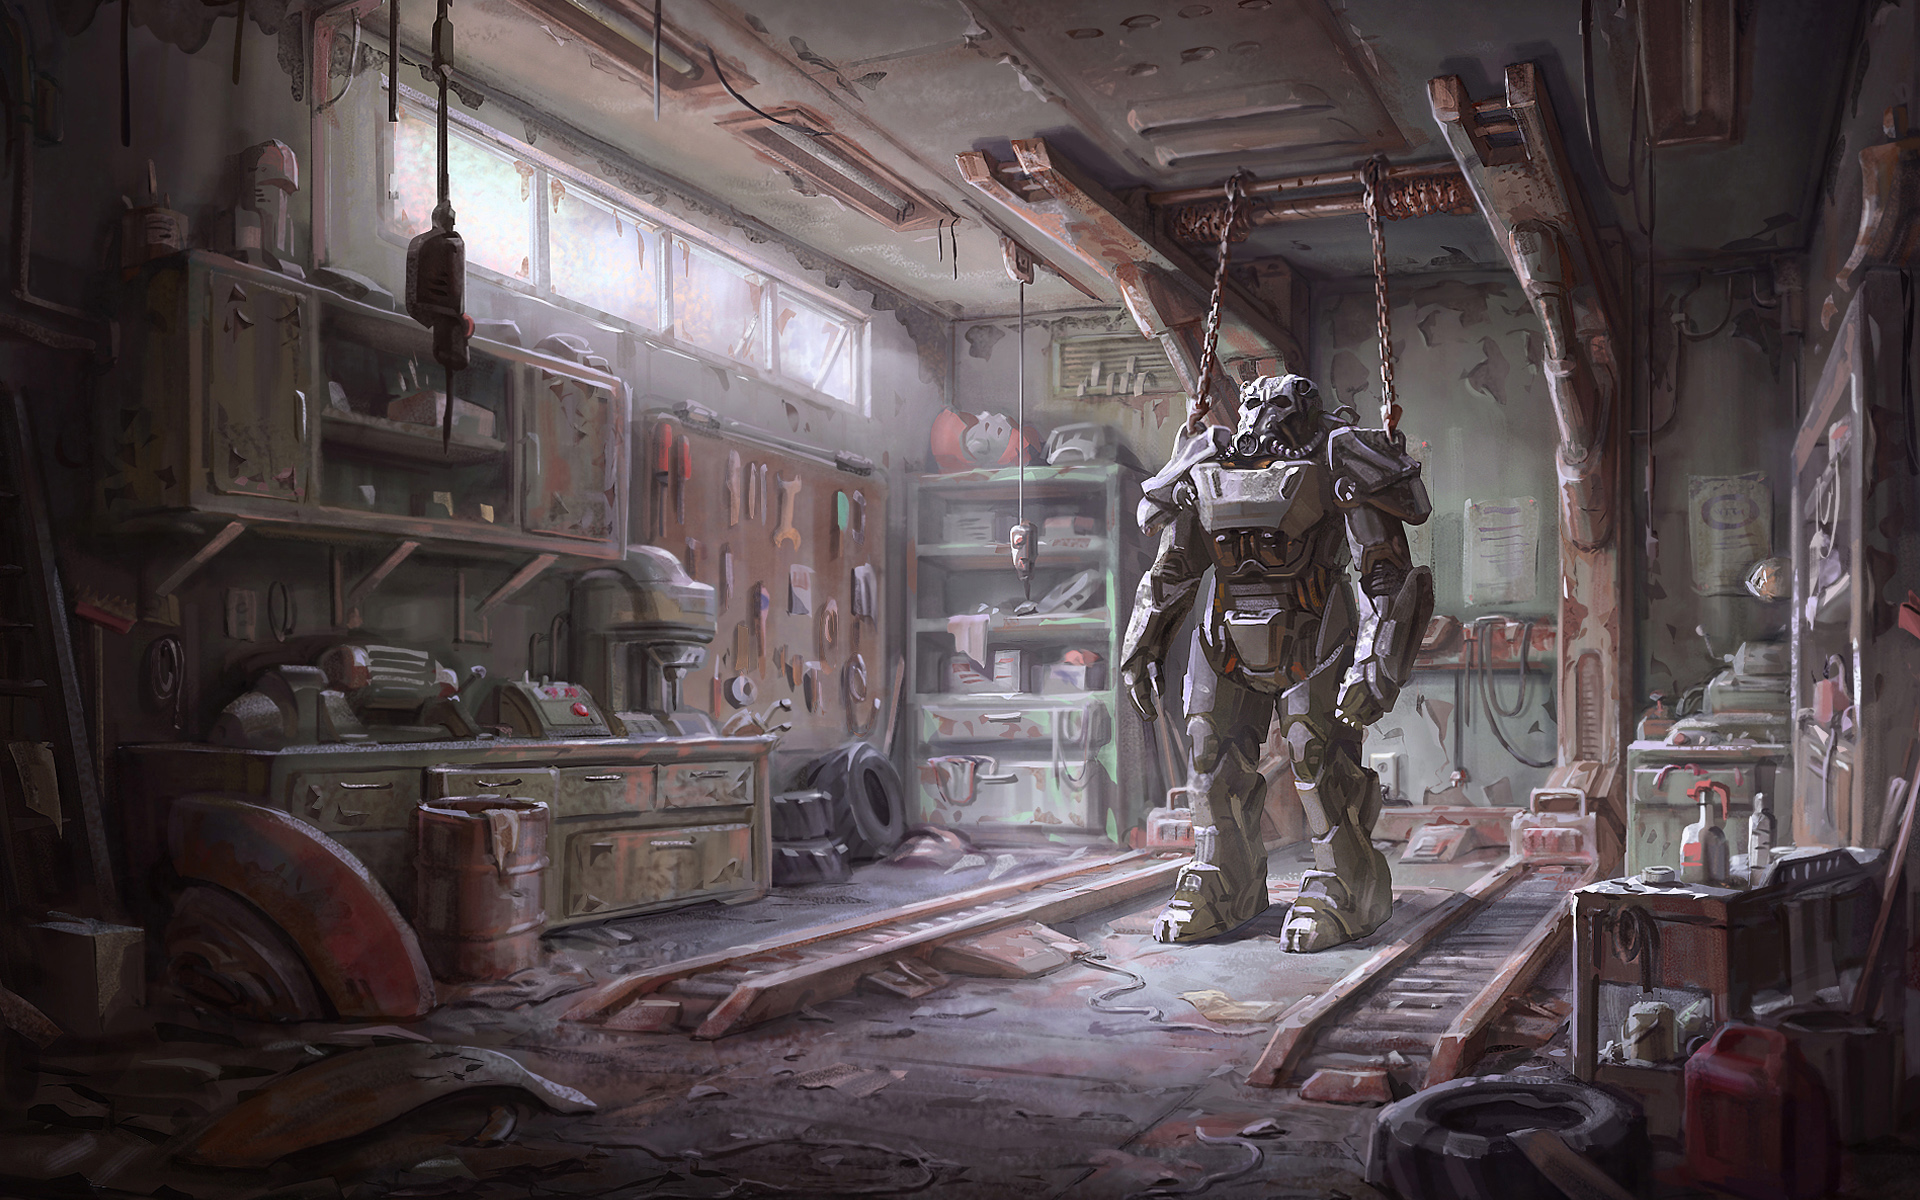 Desktop Wallpaper Fall Out Fallout 4 Armour Wallpapers Wallpapers Hd